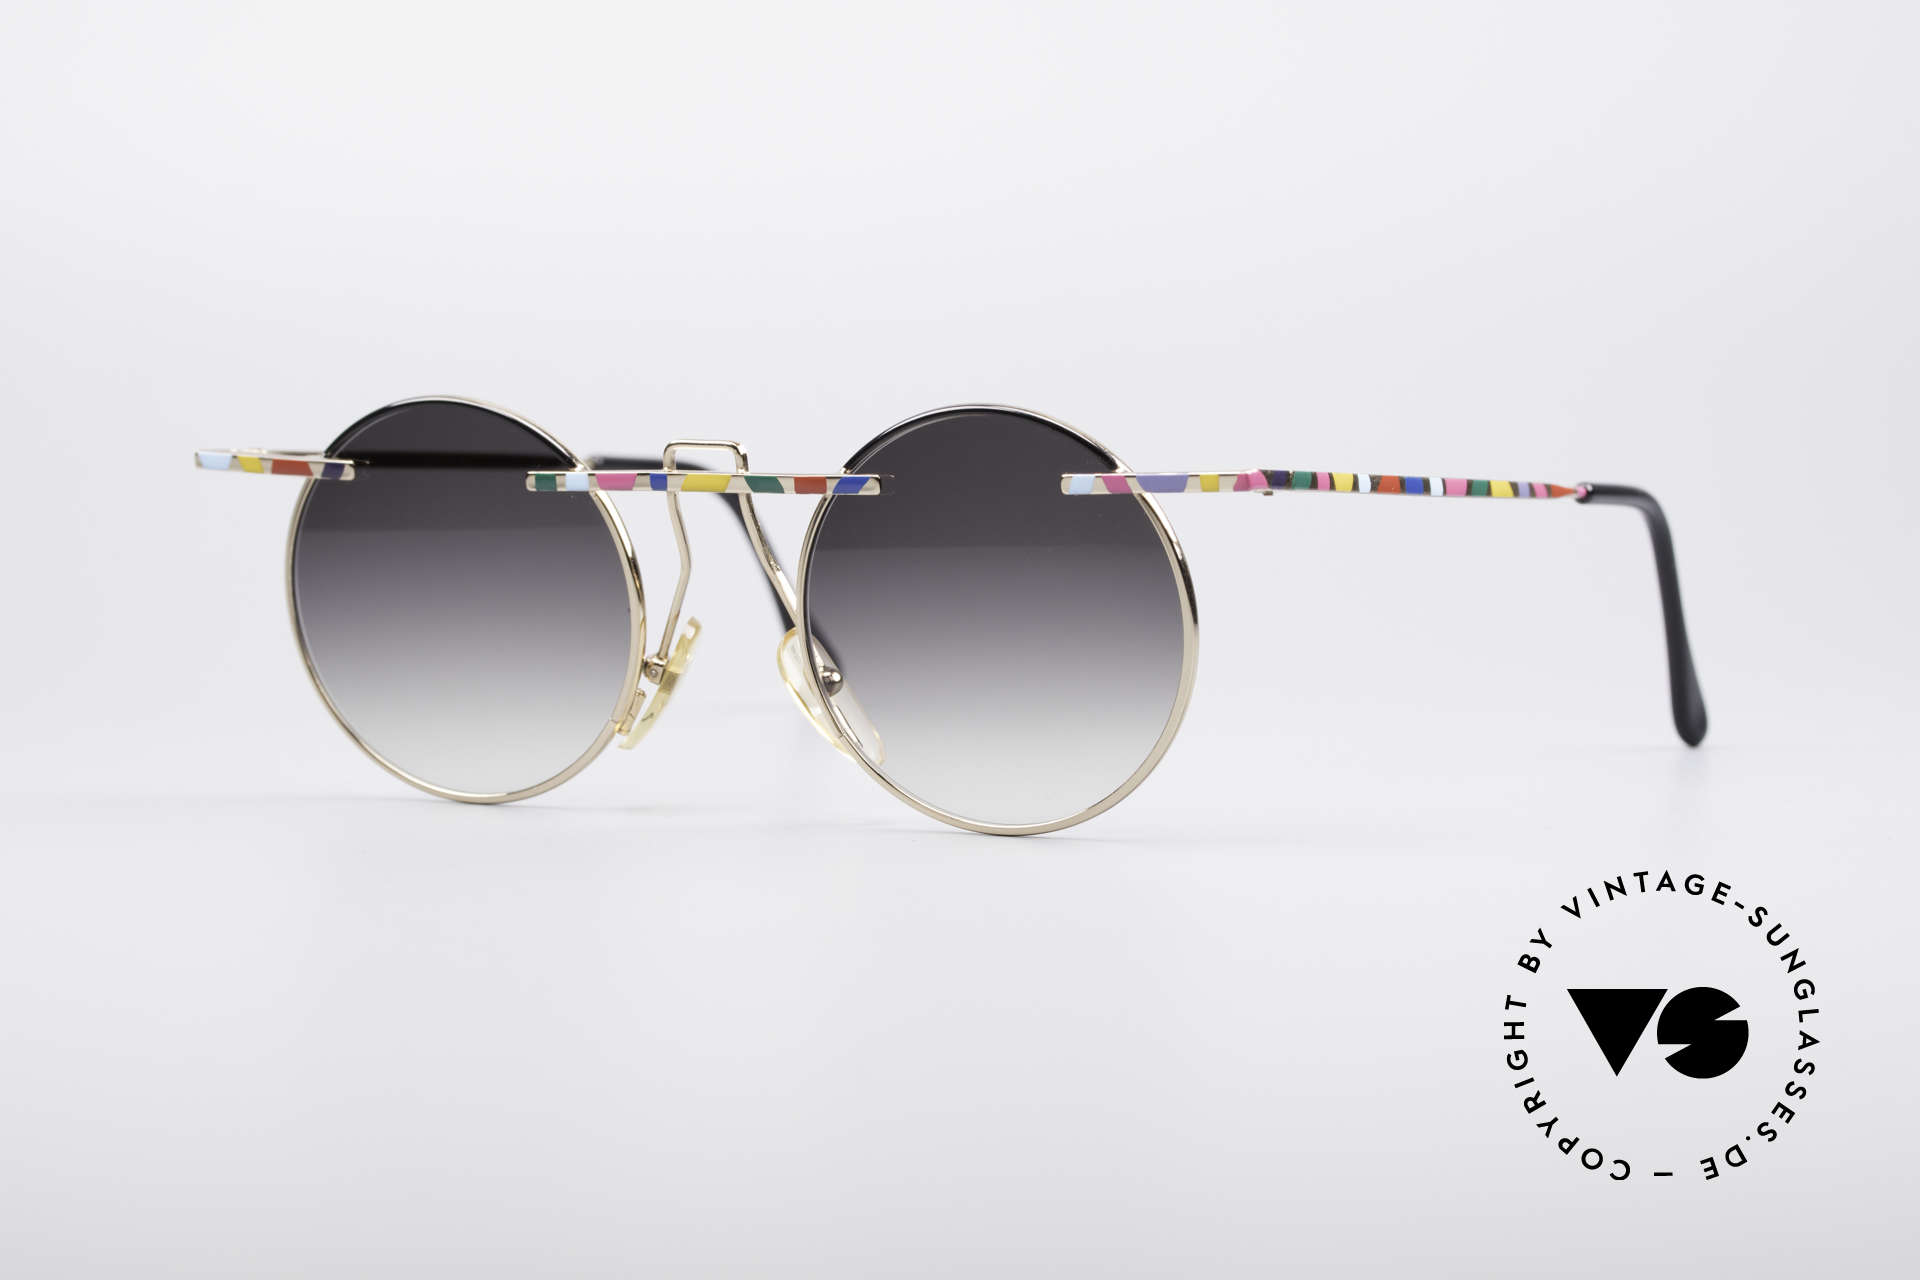 Taxi 222 by Casanova 80's Art Shades, lively Taxi by Casanova sunglasses from around 1985, Made for Women